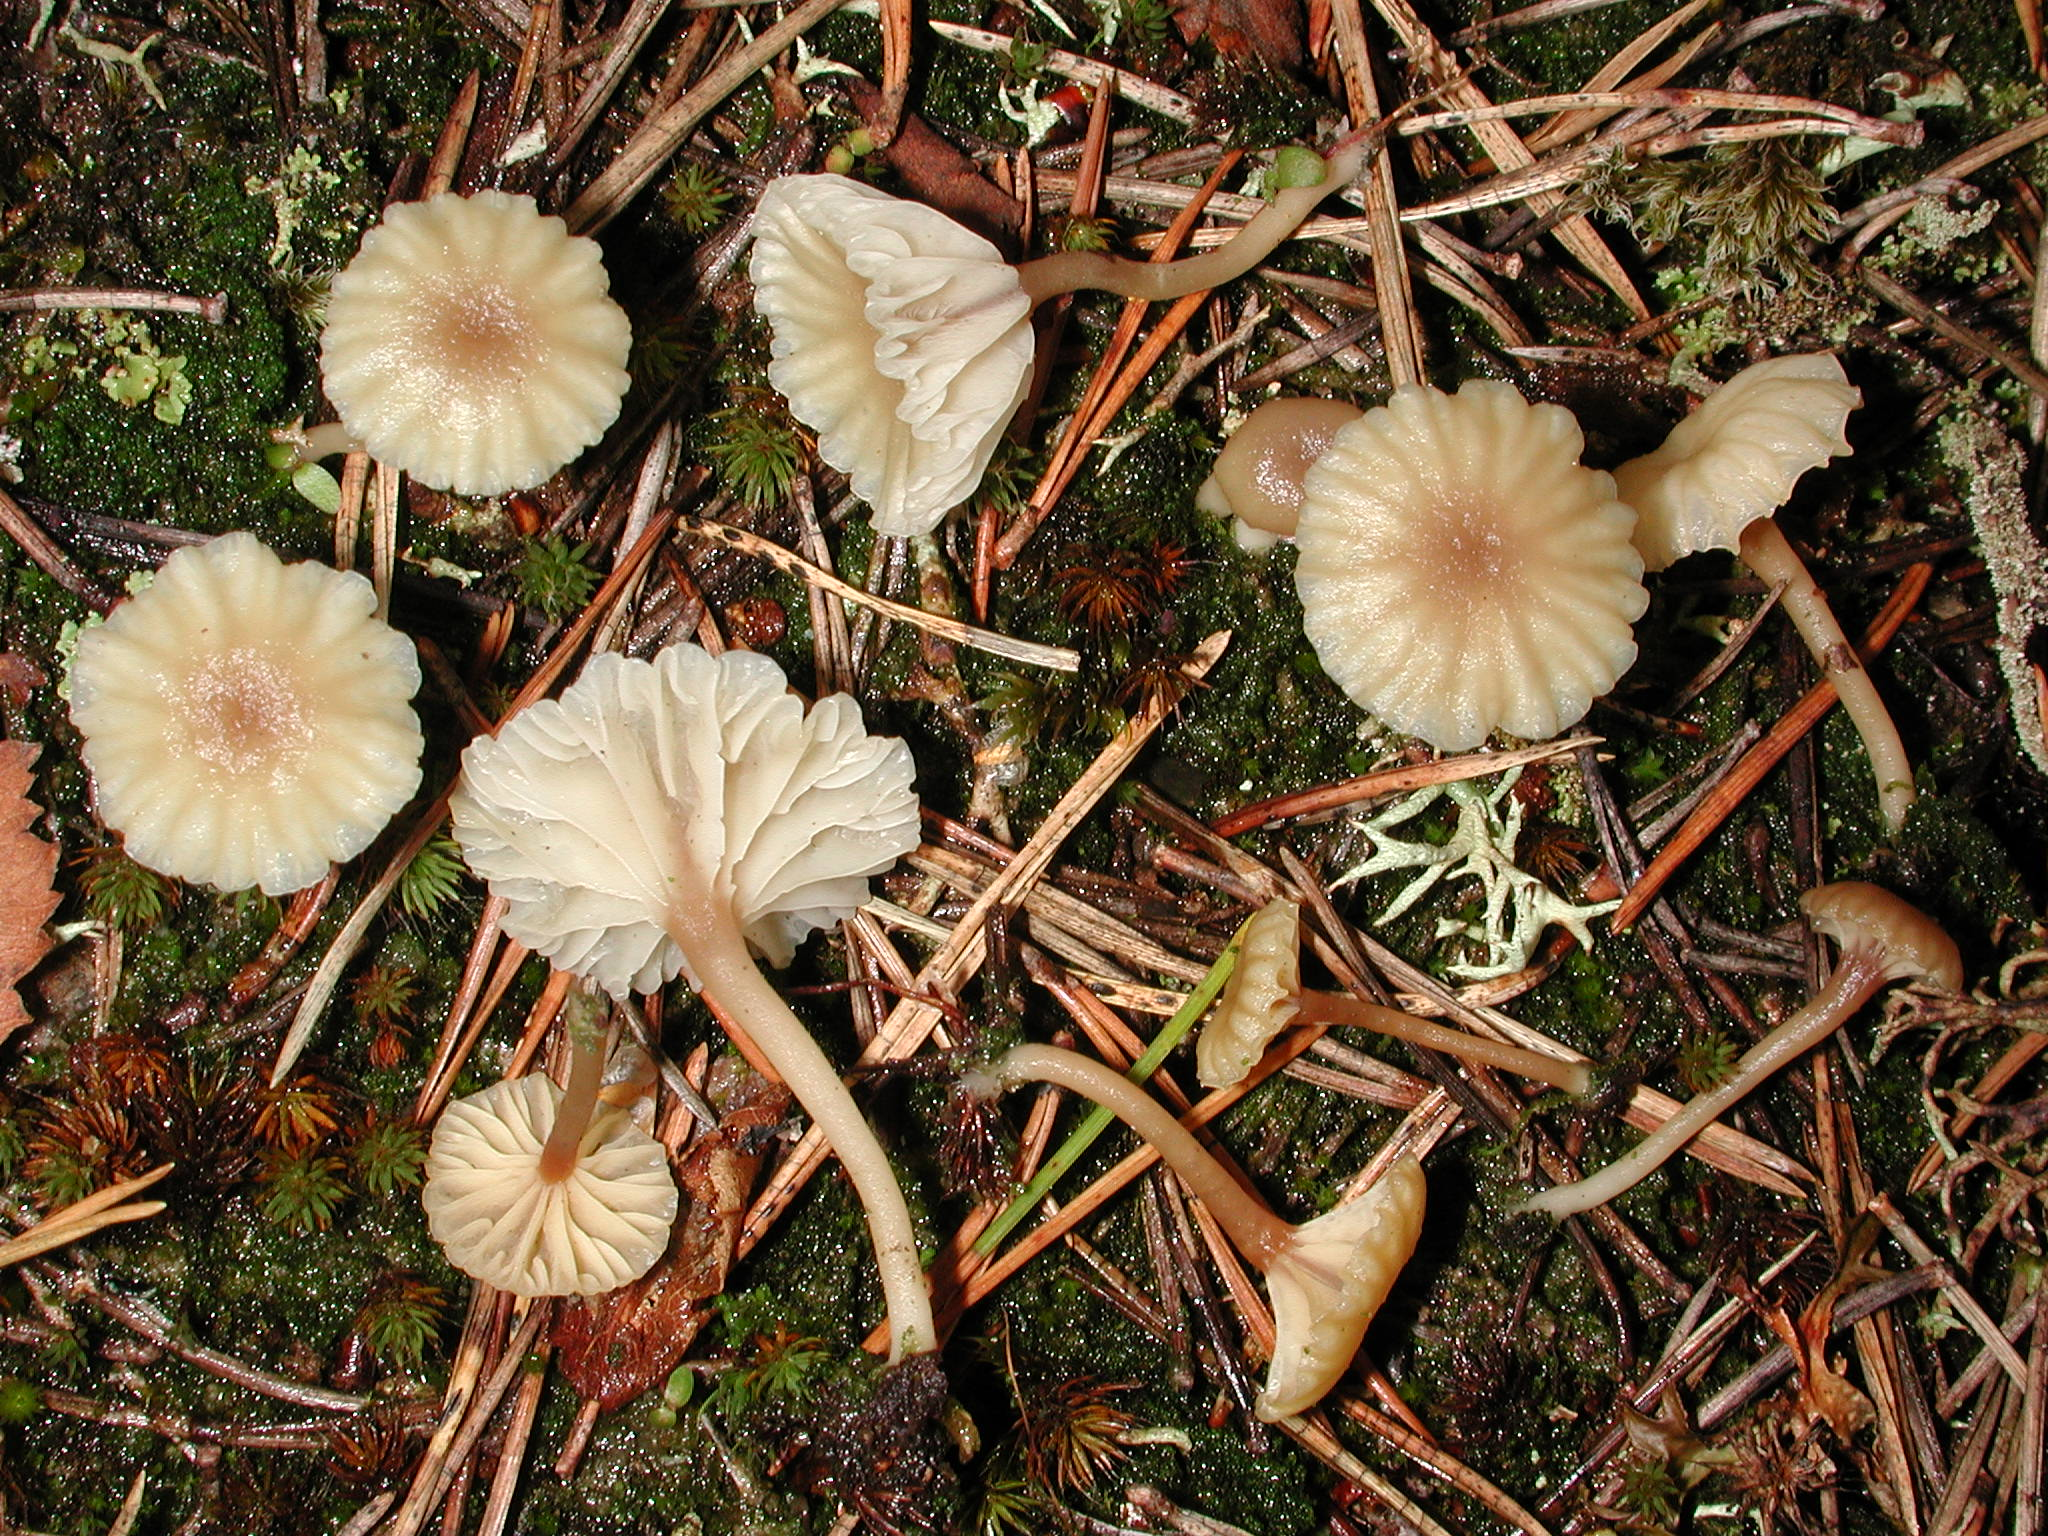 Omphalina ericetorum